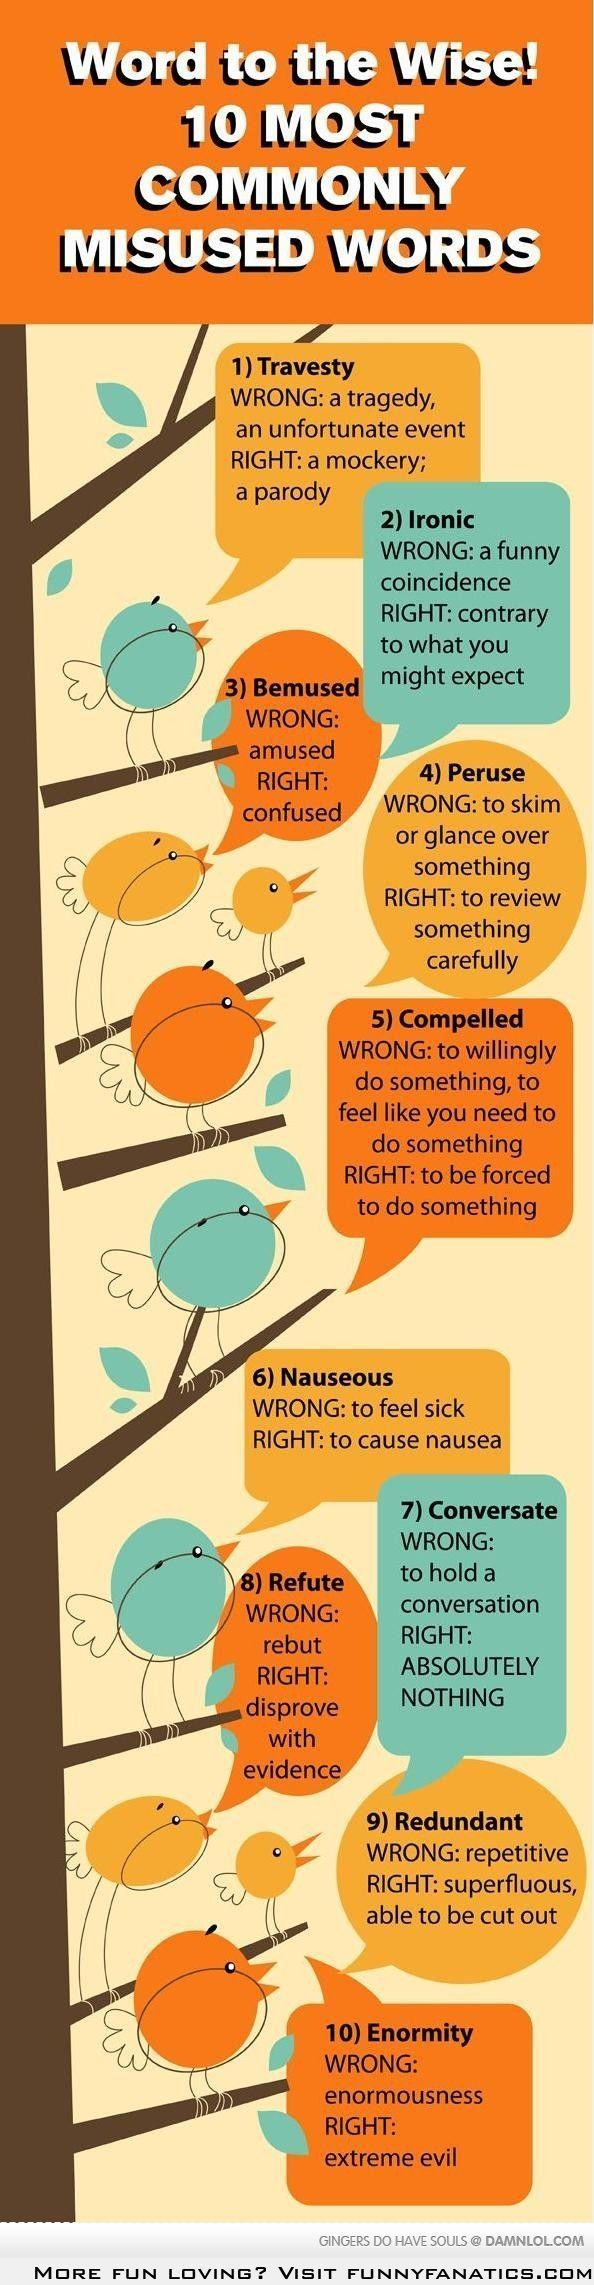 10 Most Commonly Misused Words Ironicly, I've been using the word 'irony' wrong my whole life.